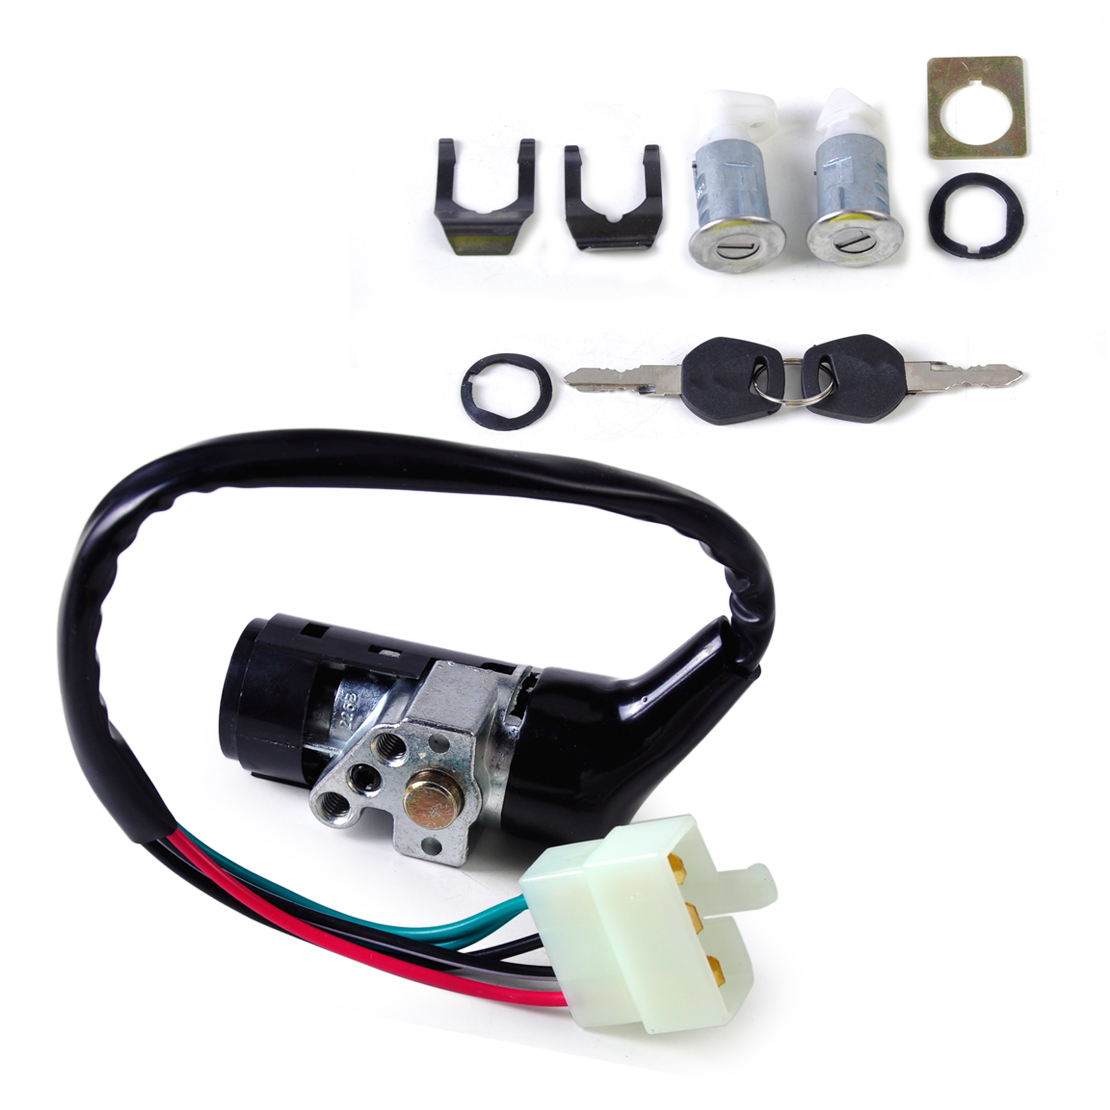 Moto Ignition Switch 5 Wire 2 Keys Lock Toolbox Lock Set fit for Chinese Scooter GY6 50cc 125cc 150cc 250cc ATV Scooters Moped